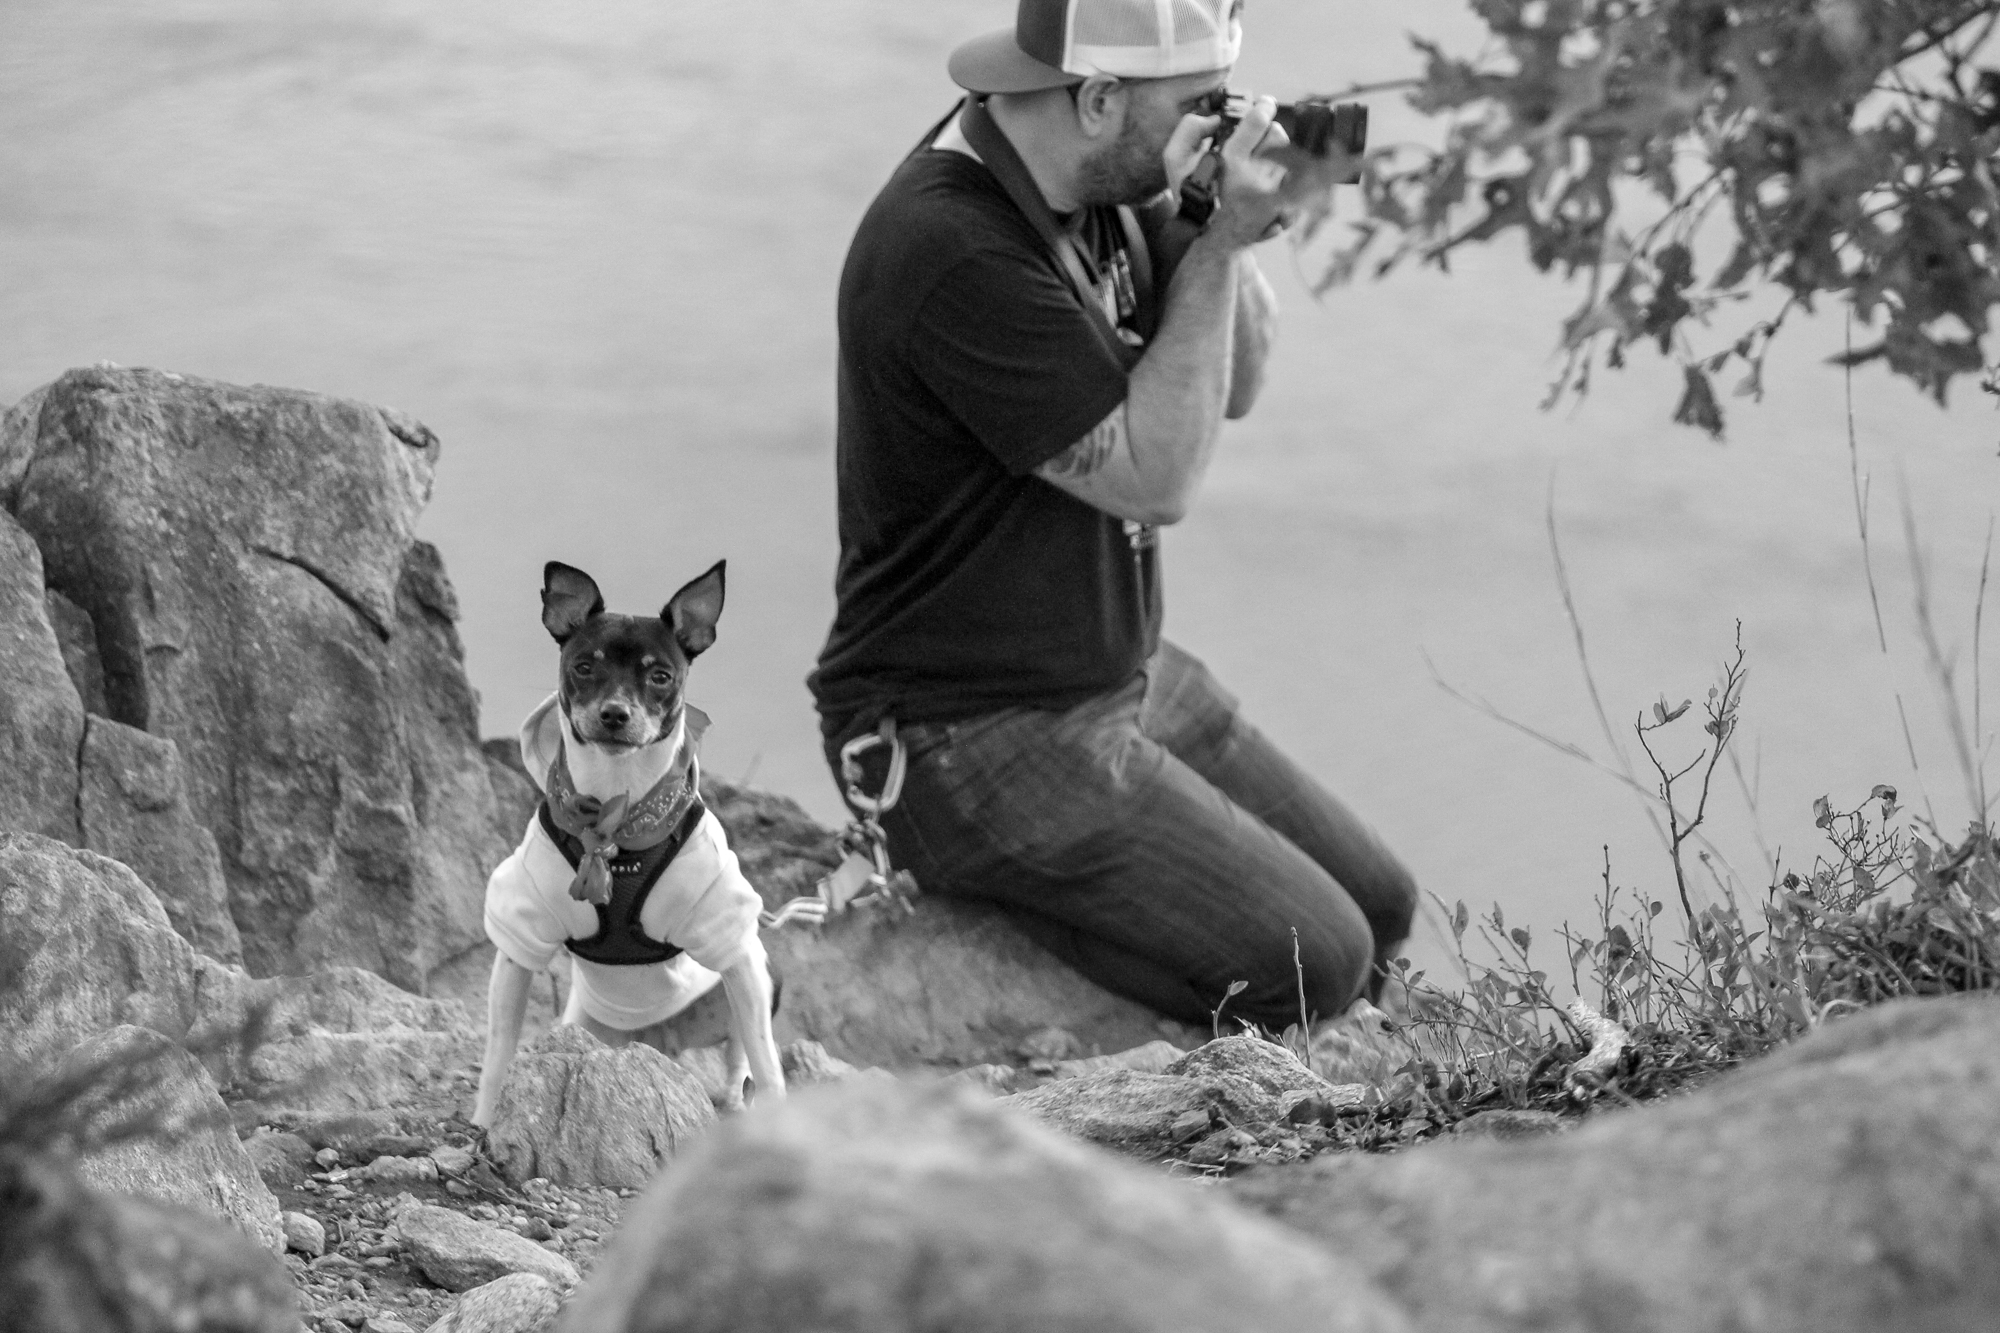 Photographer Rick O'Leary and his sidekick, Charro